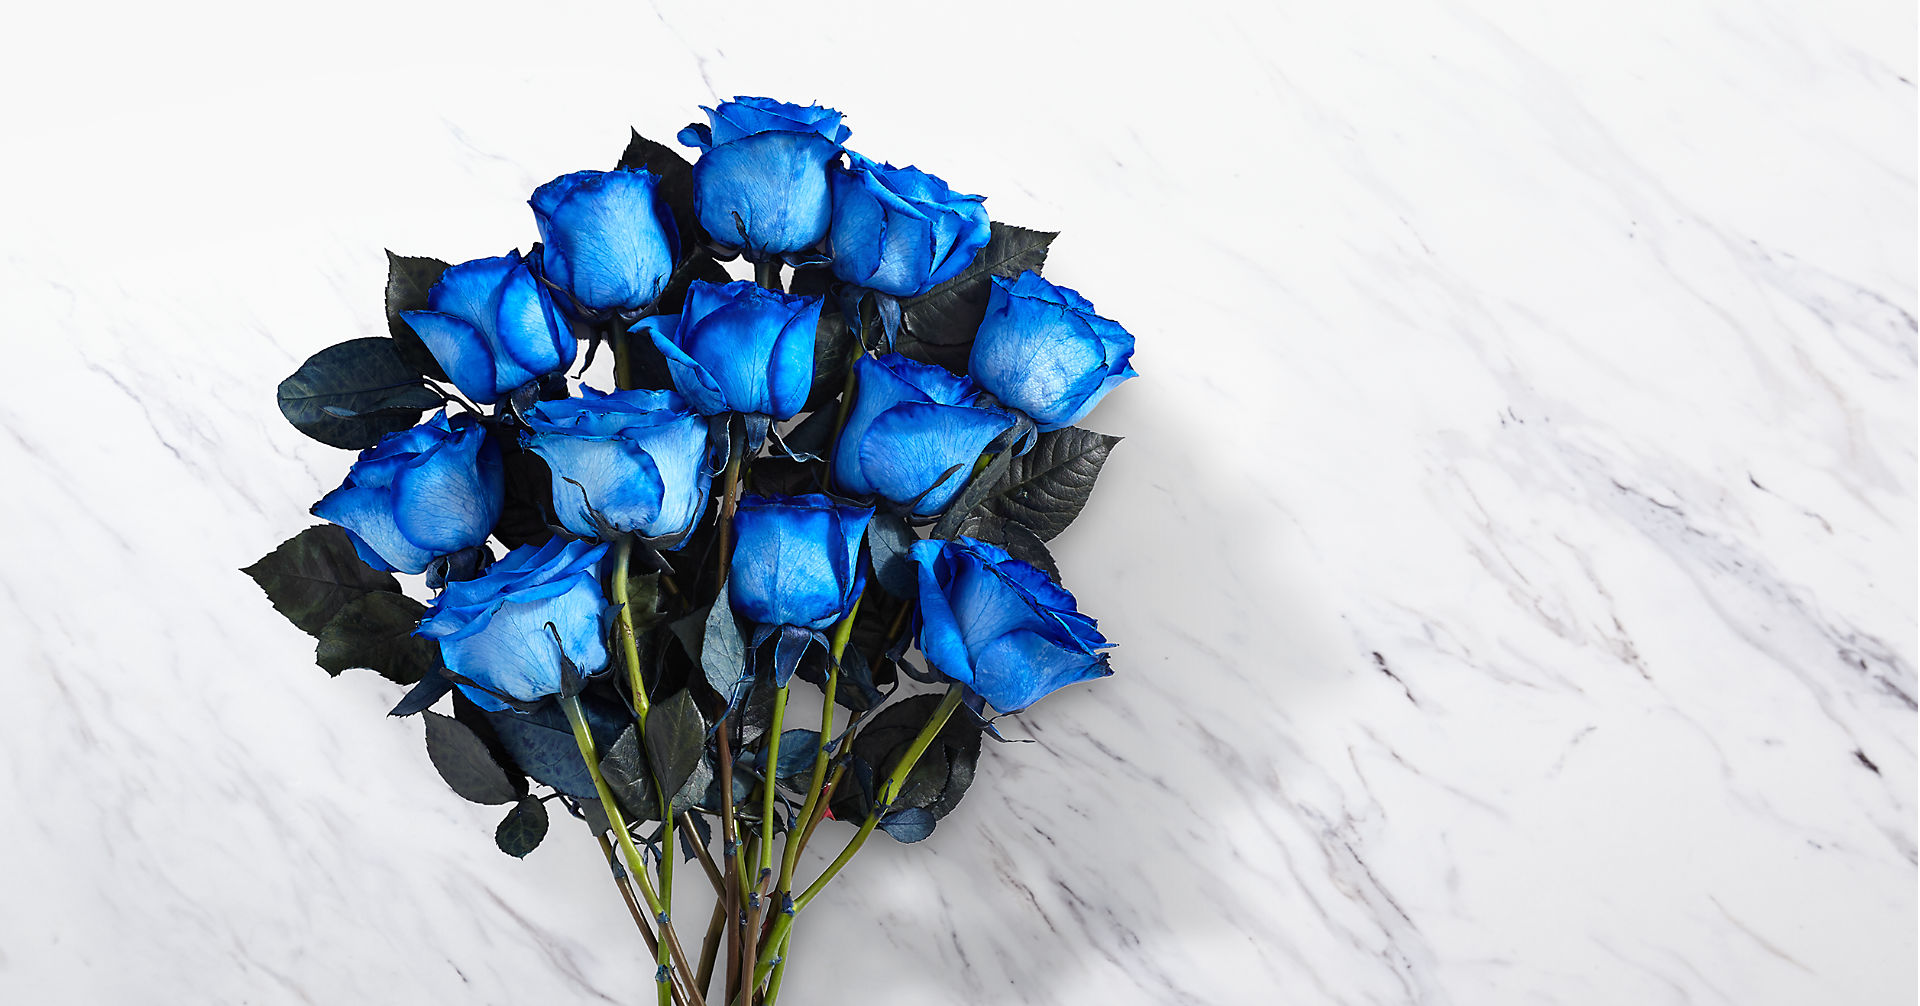 Extreme Blue Hues Fiesta Rose Bouquet - 12 Stems - VASE INCLUDED - Image 2 Of 2